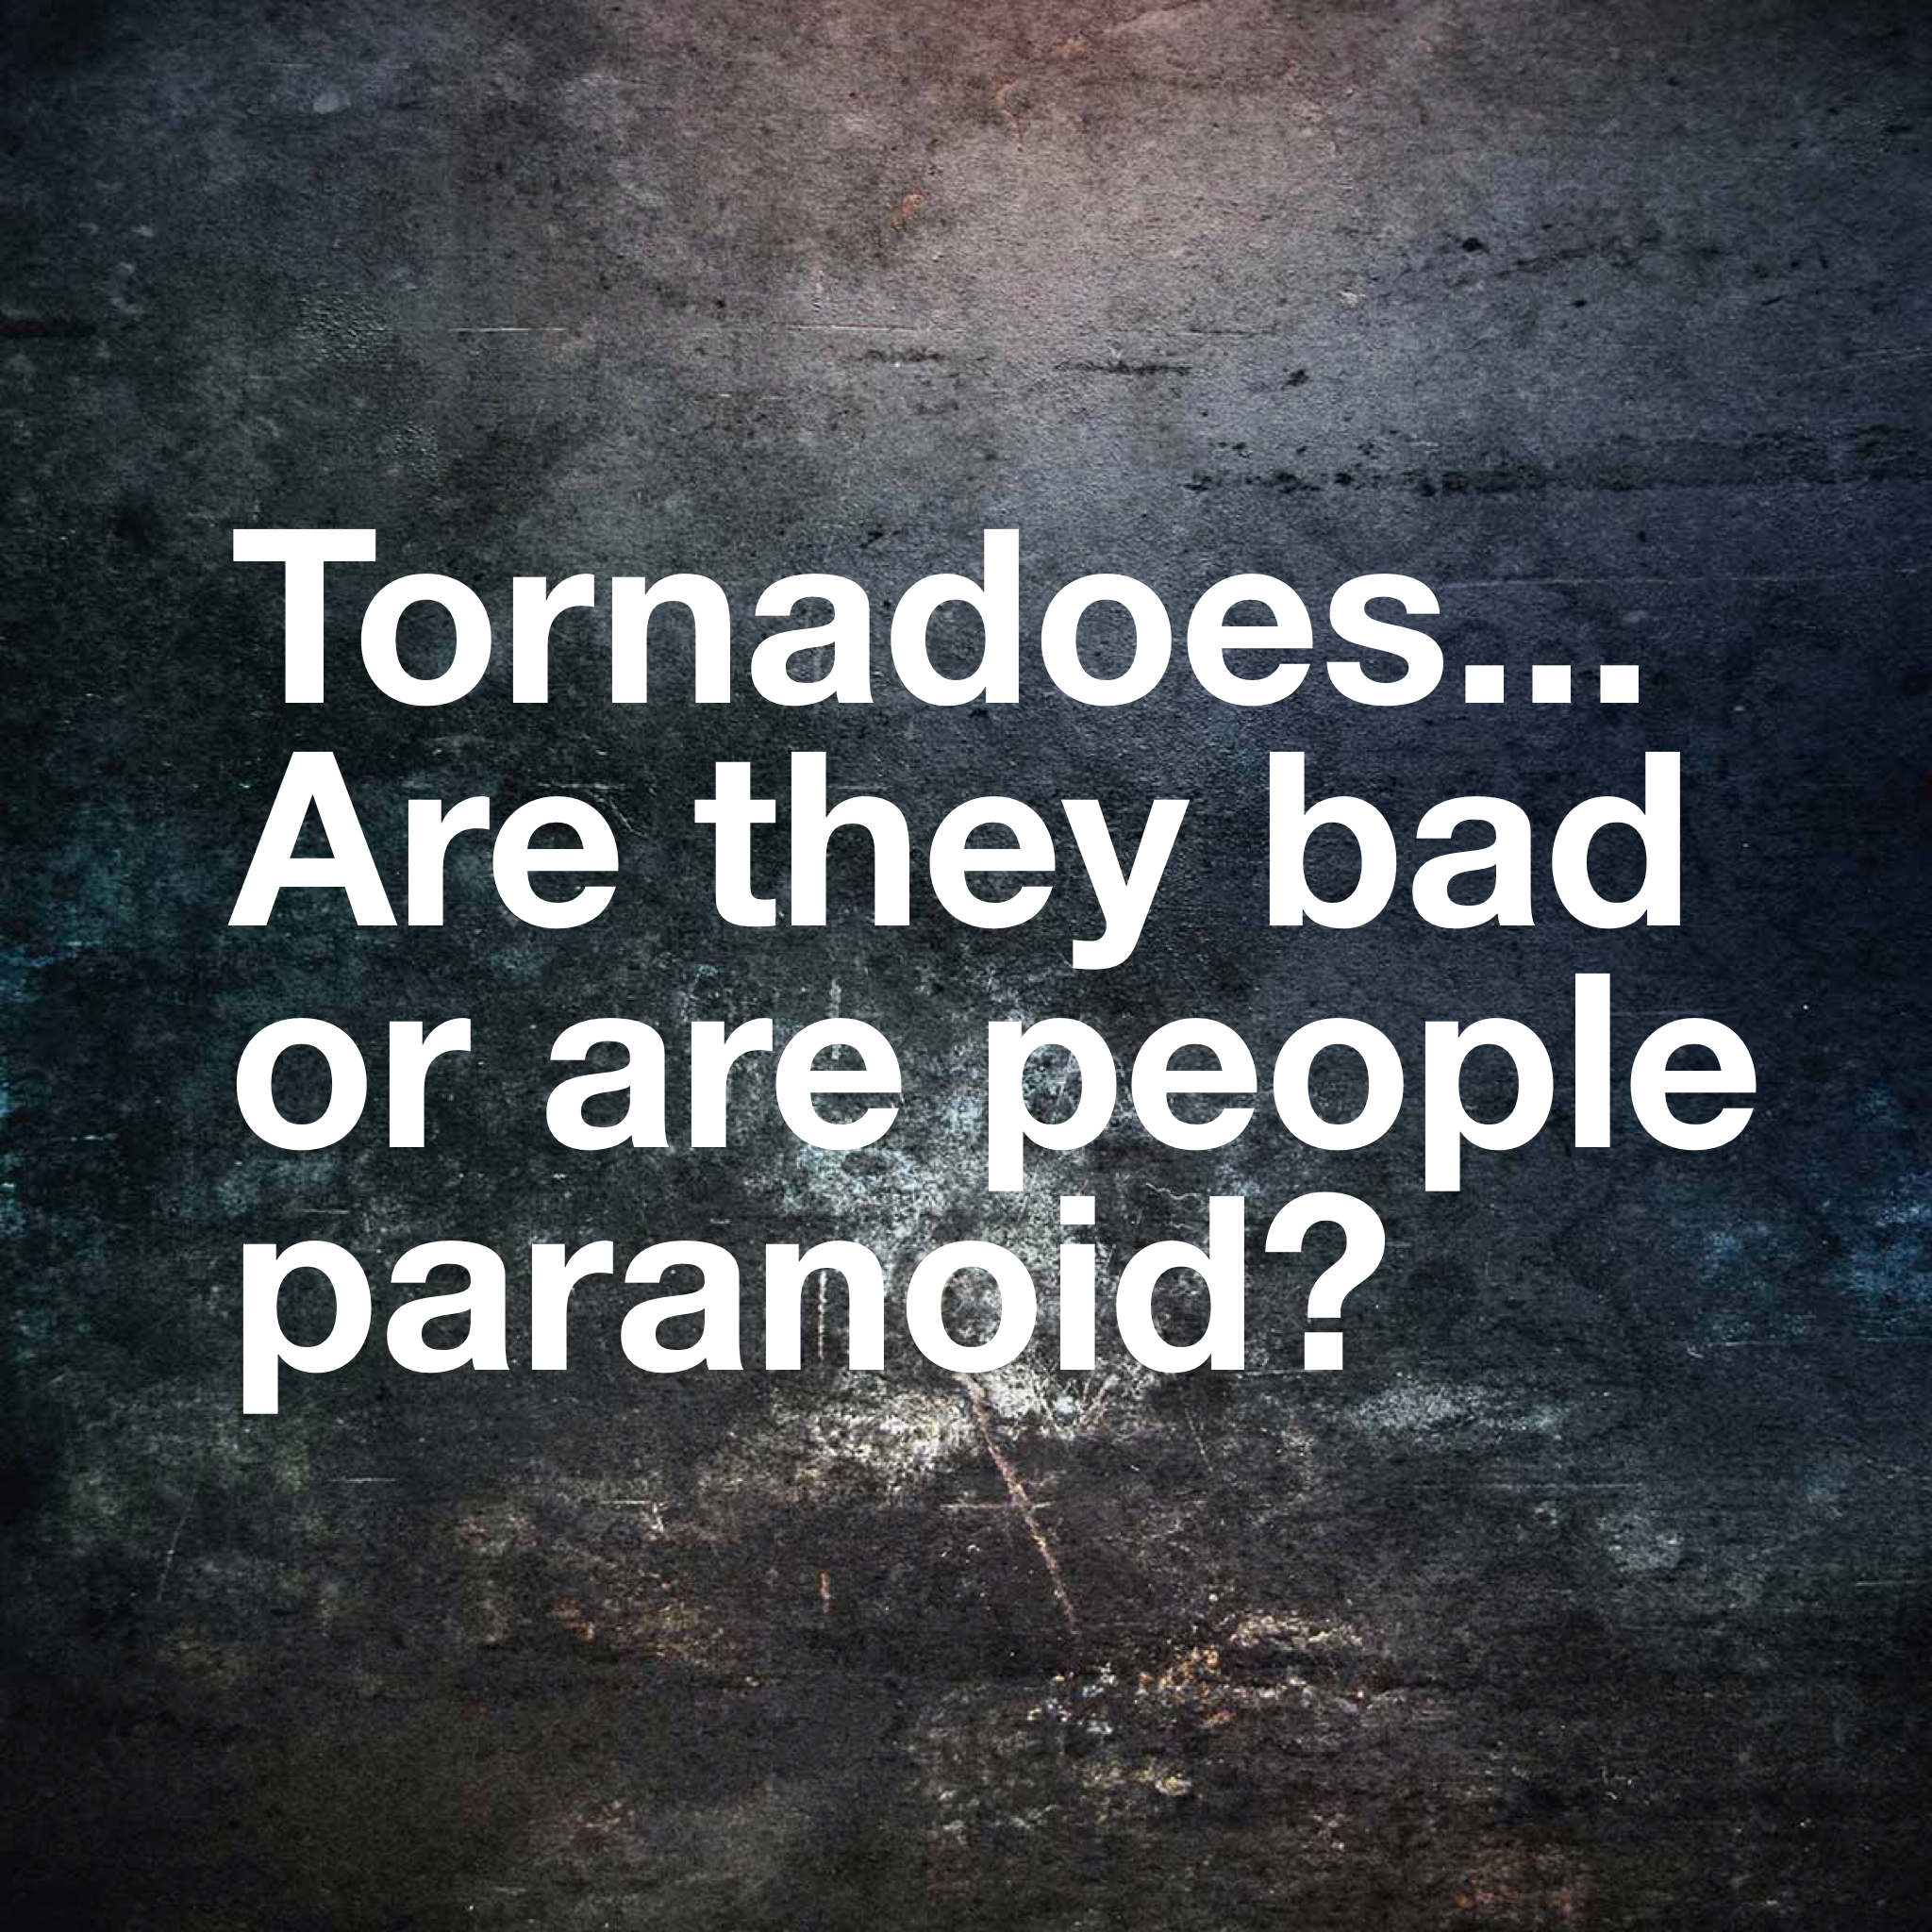 tornadoes.... are they bad or are people paranoid?